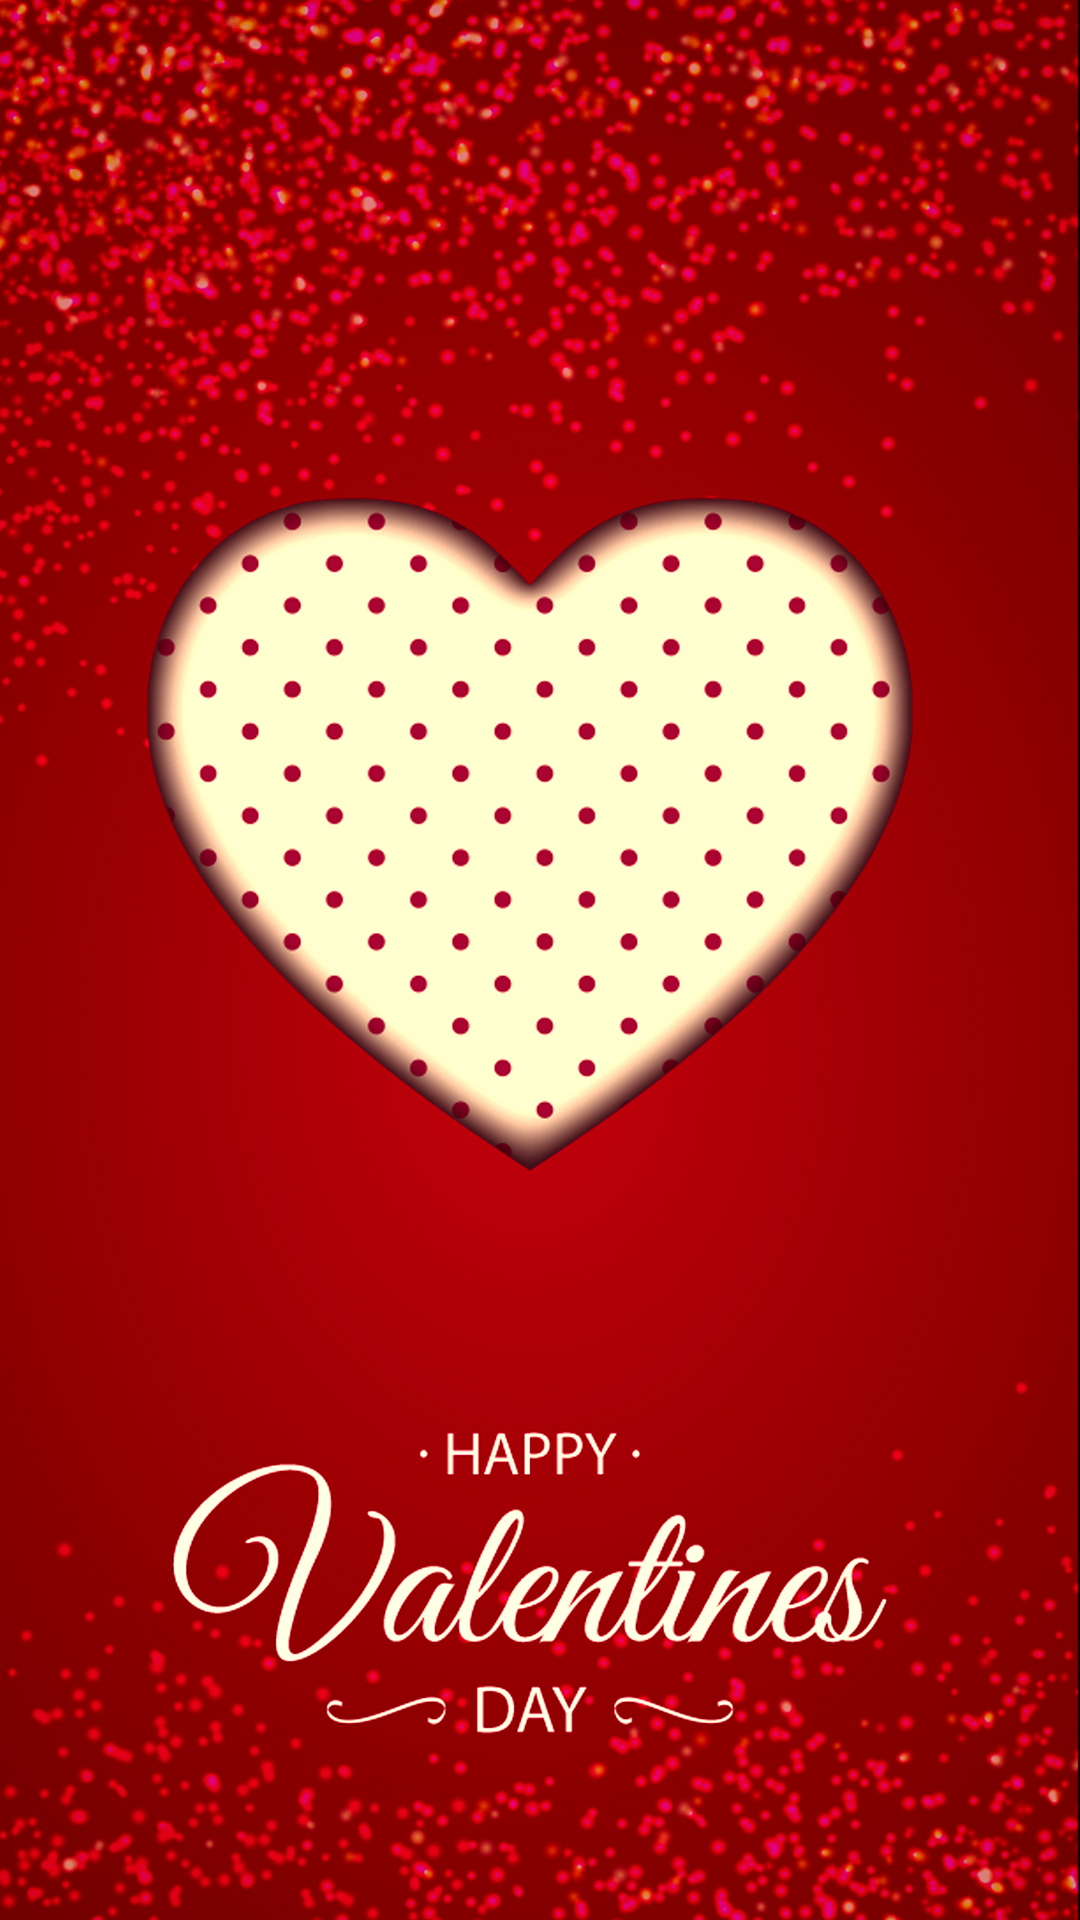 free hd happy valentines phone wallpaper 4457happy valentines phone wallpaper